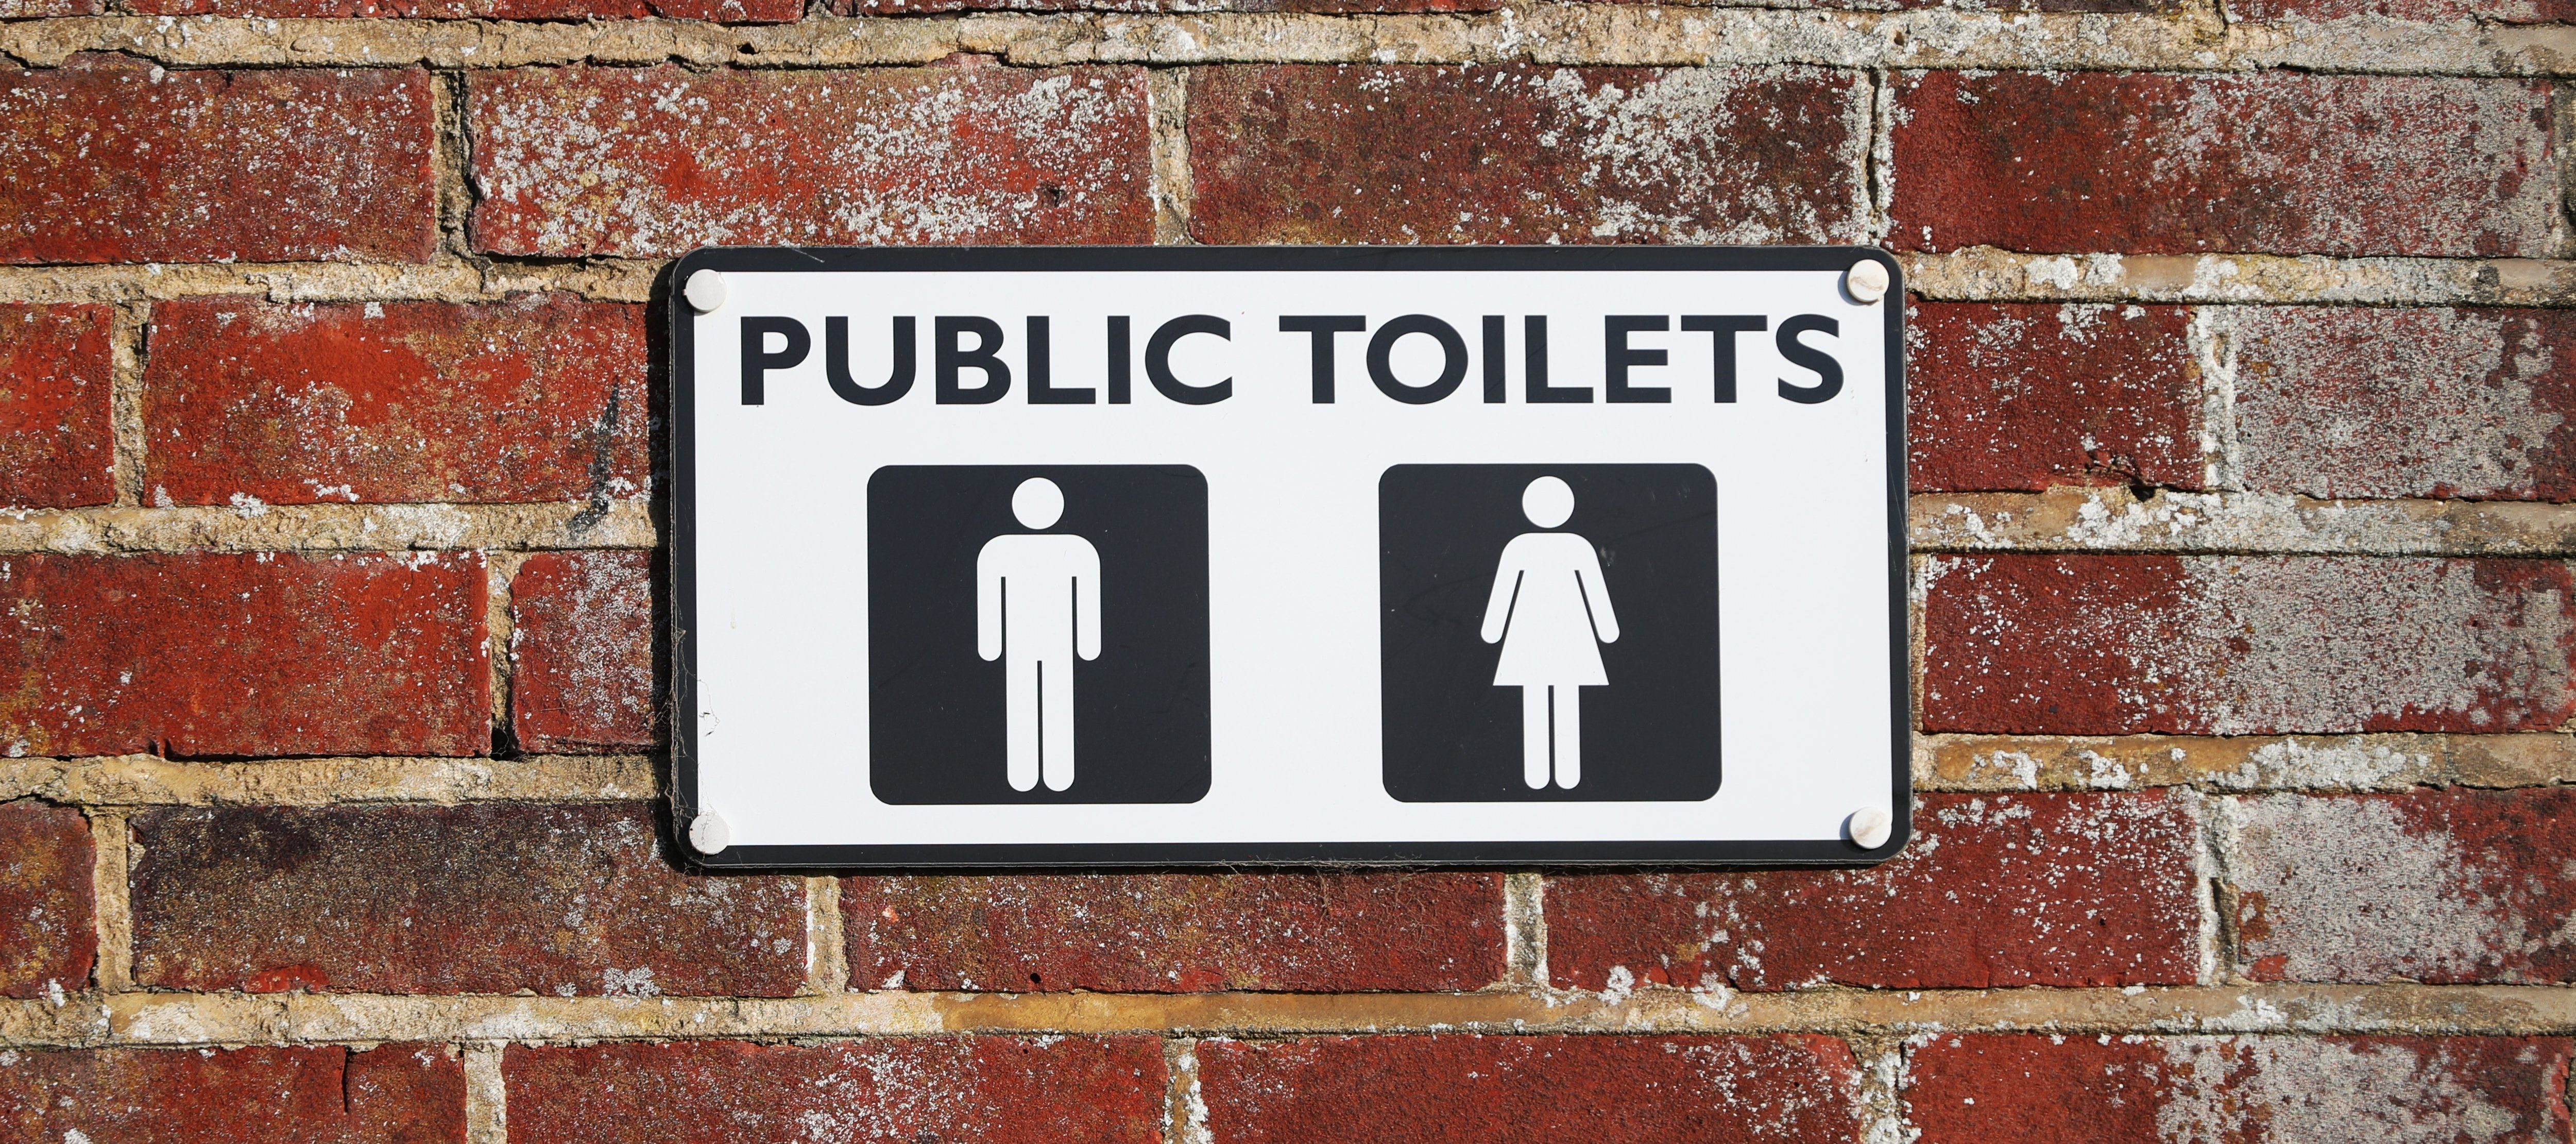 Public toilets gradually reopening- What are your thoughts?